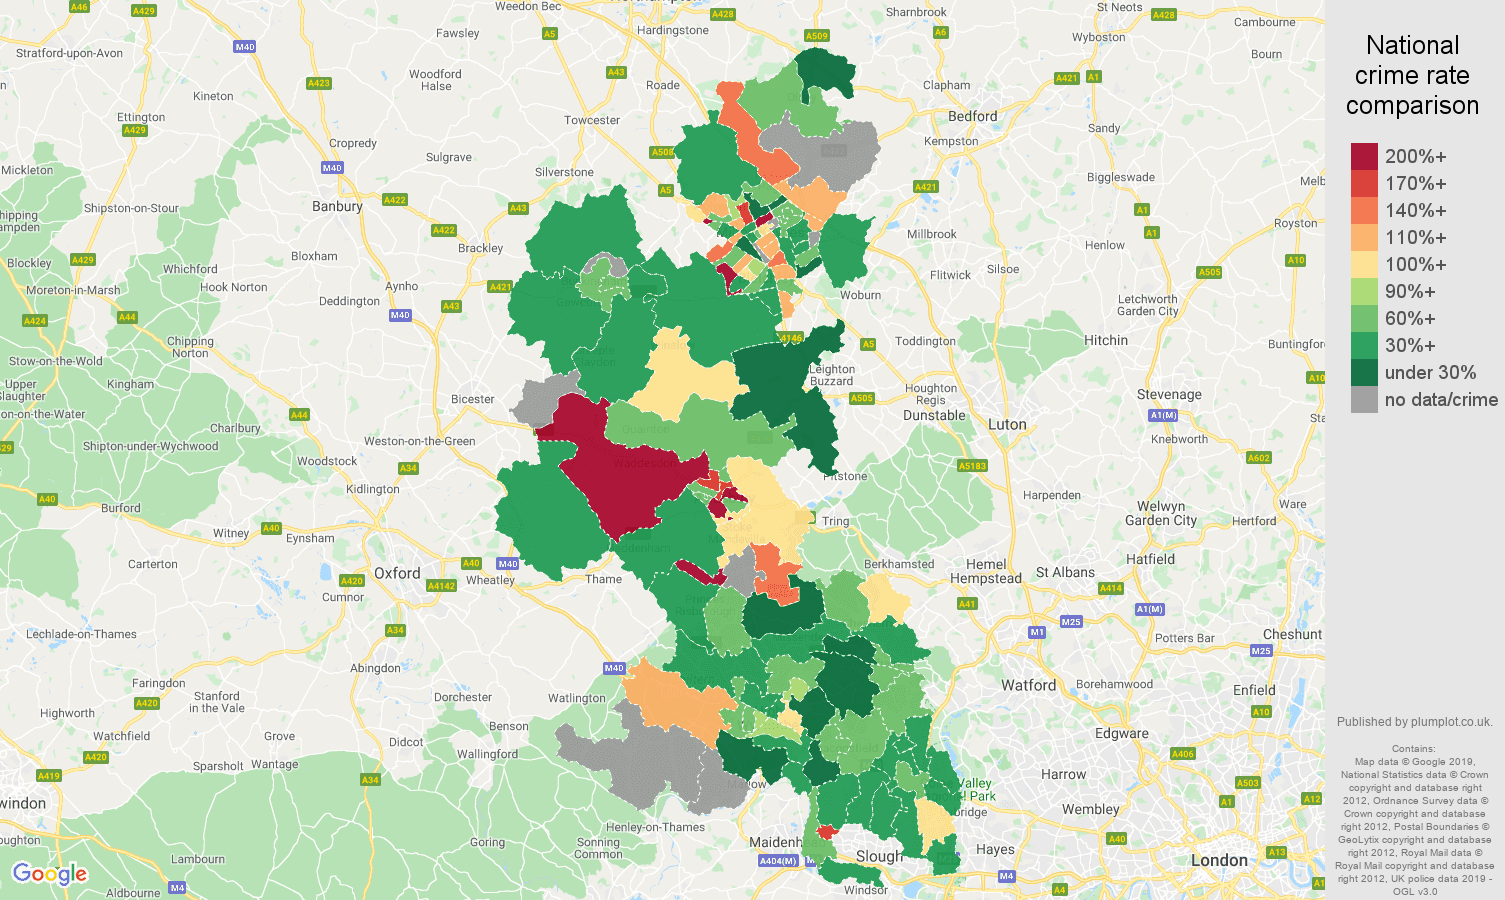 Buckinghamshire other crime rate comparison map